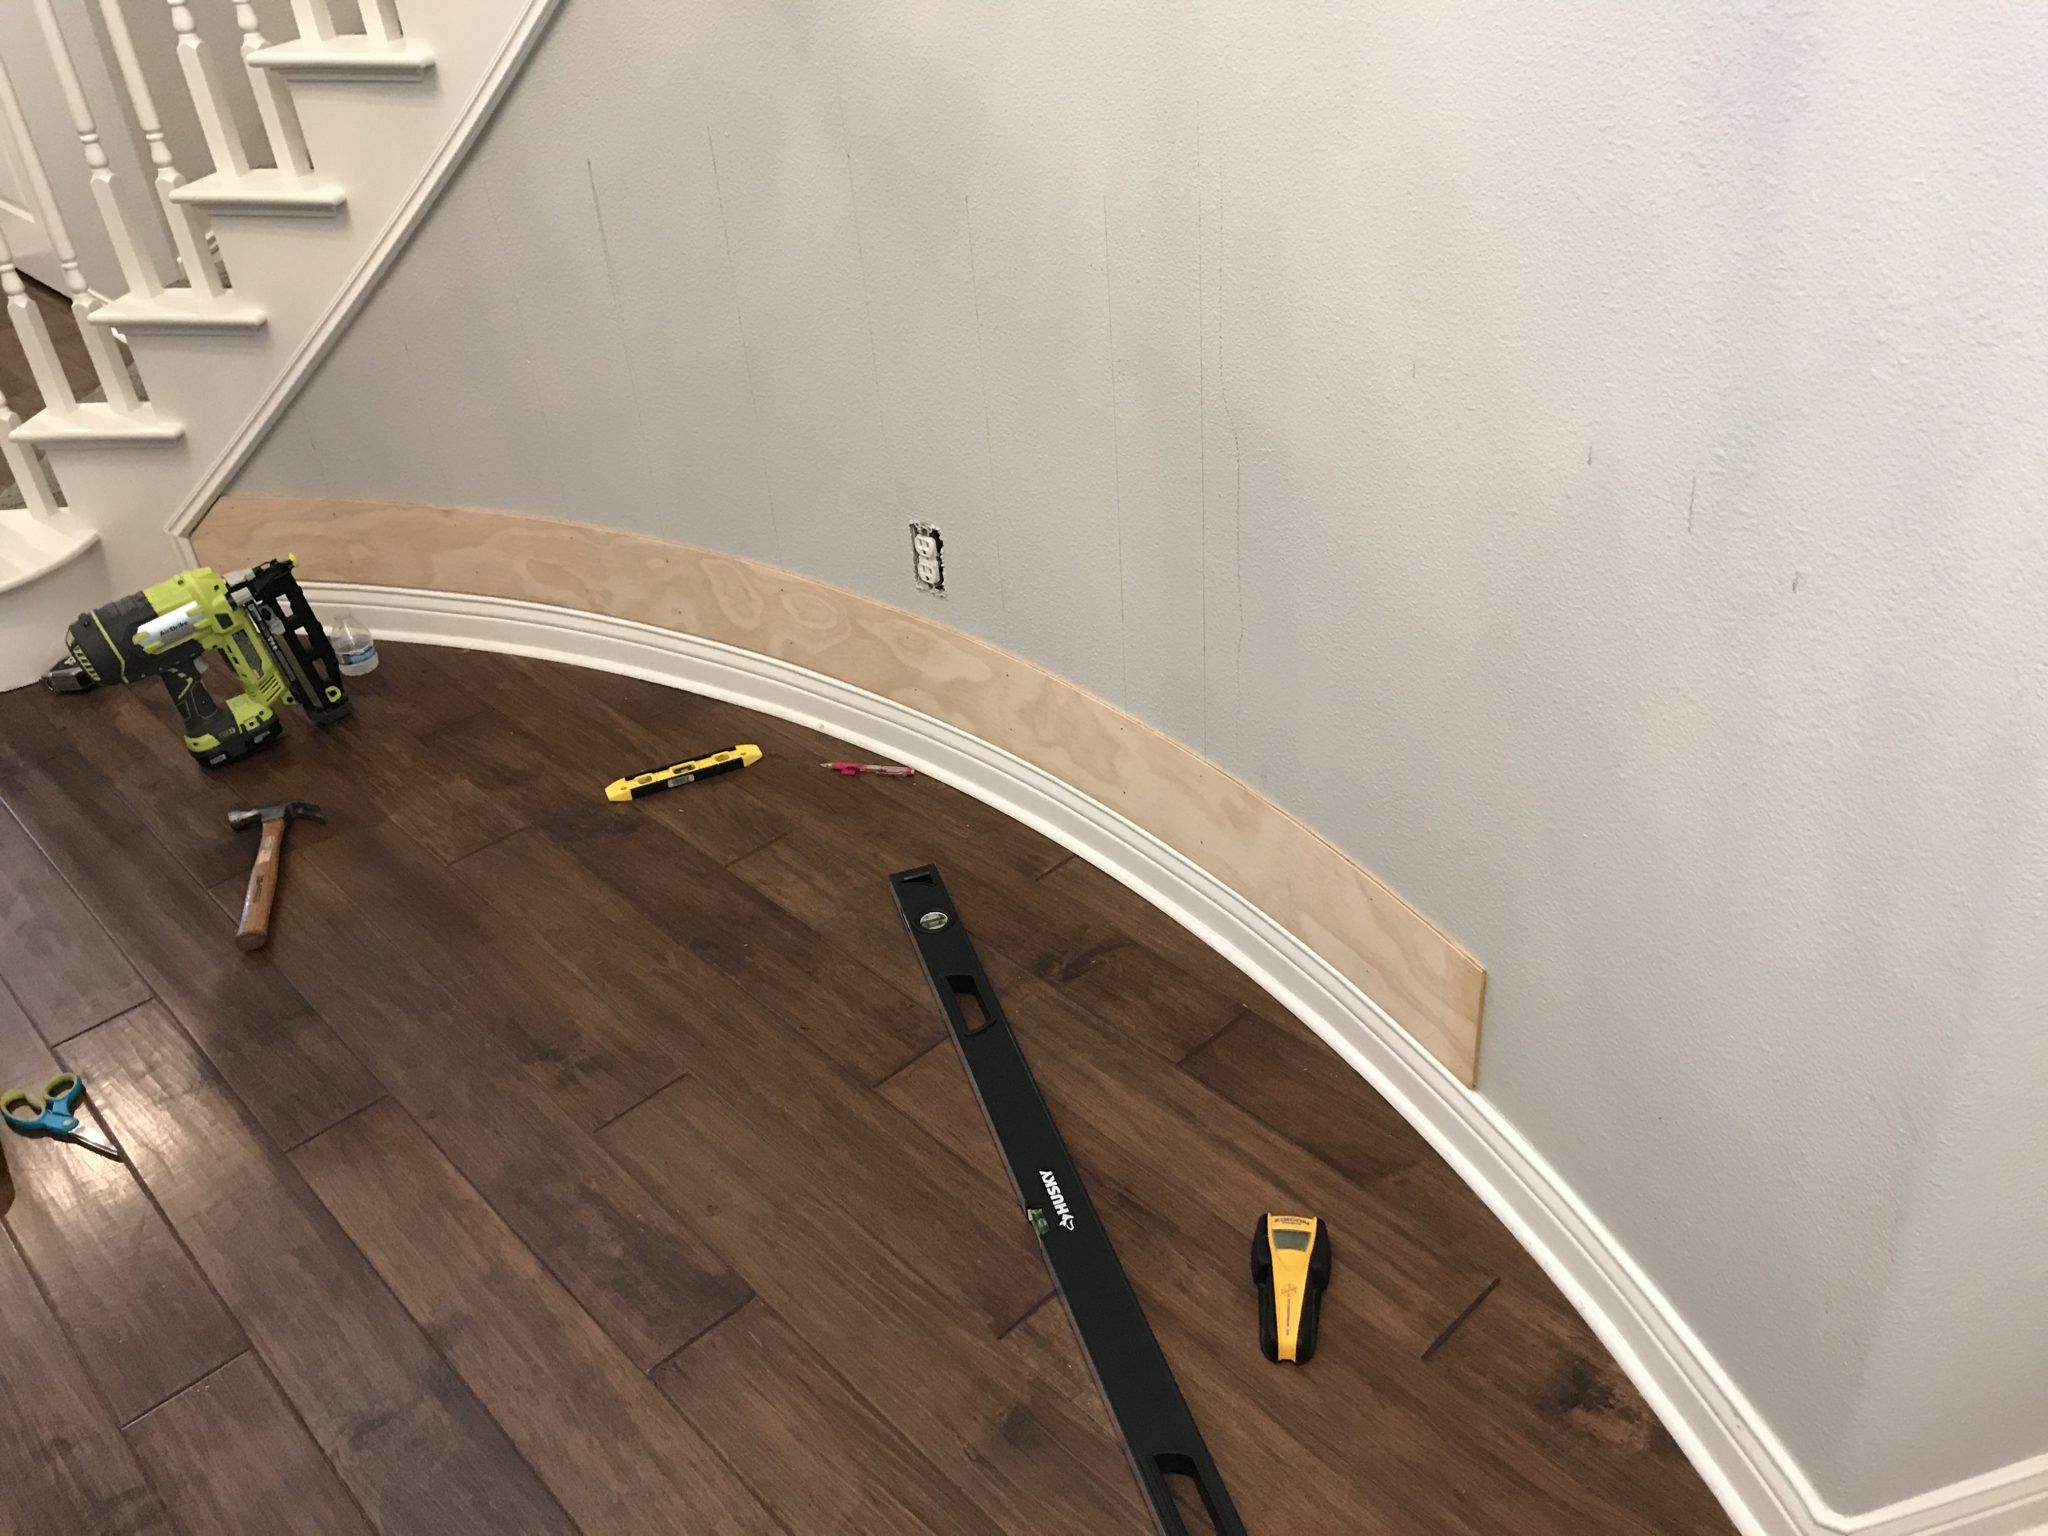 How To Shiplap A Curved Wall Fancypants Mommy Co Shiplap Curved Walls Ship Lap Walls